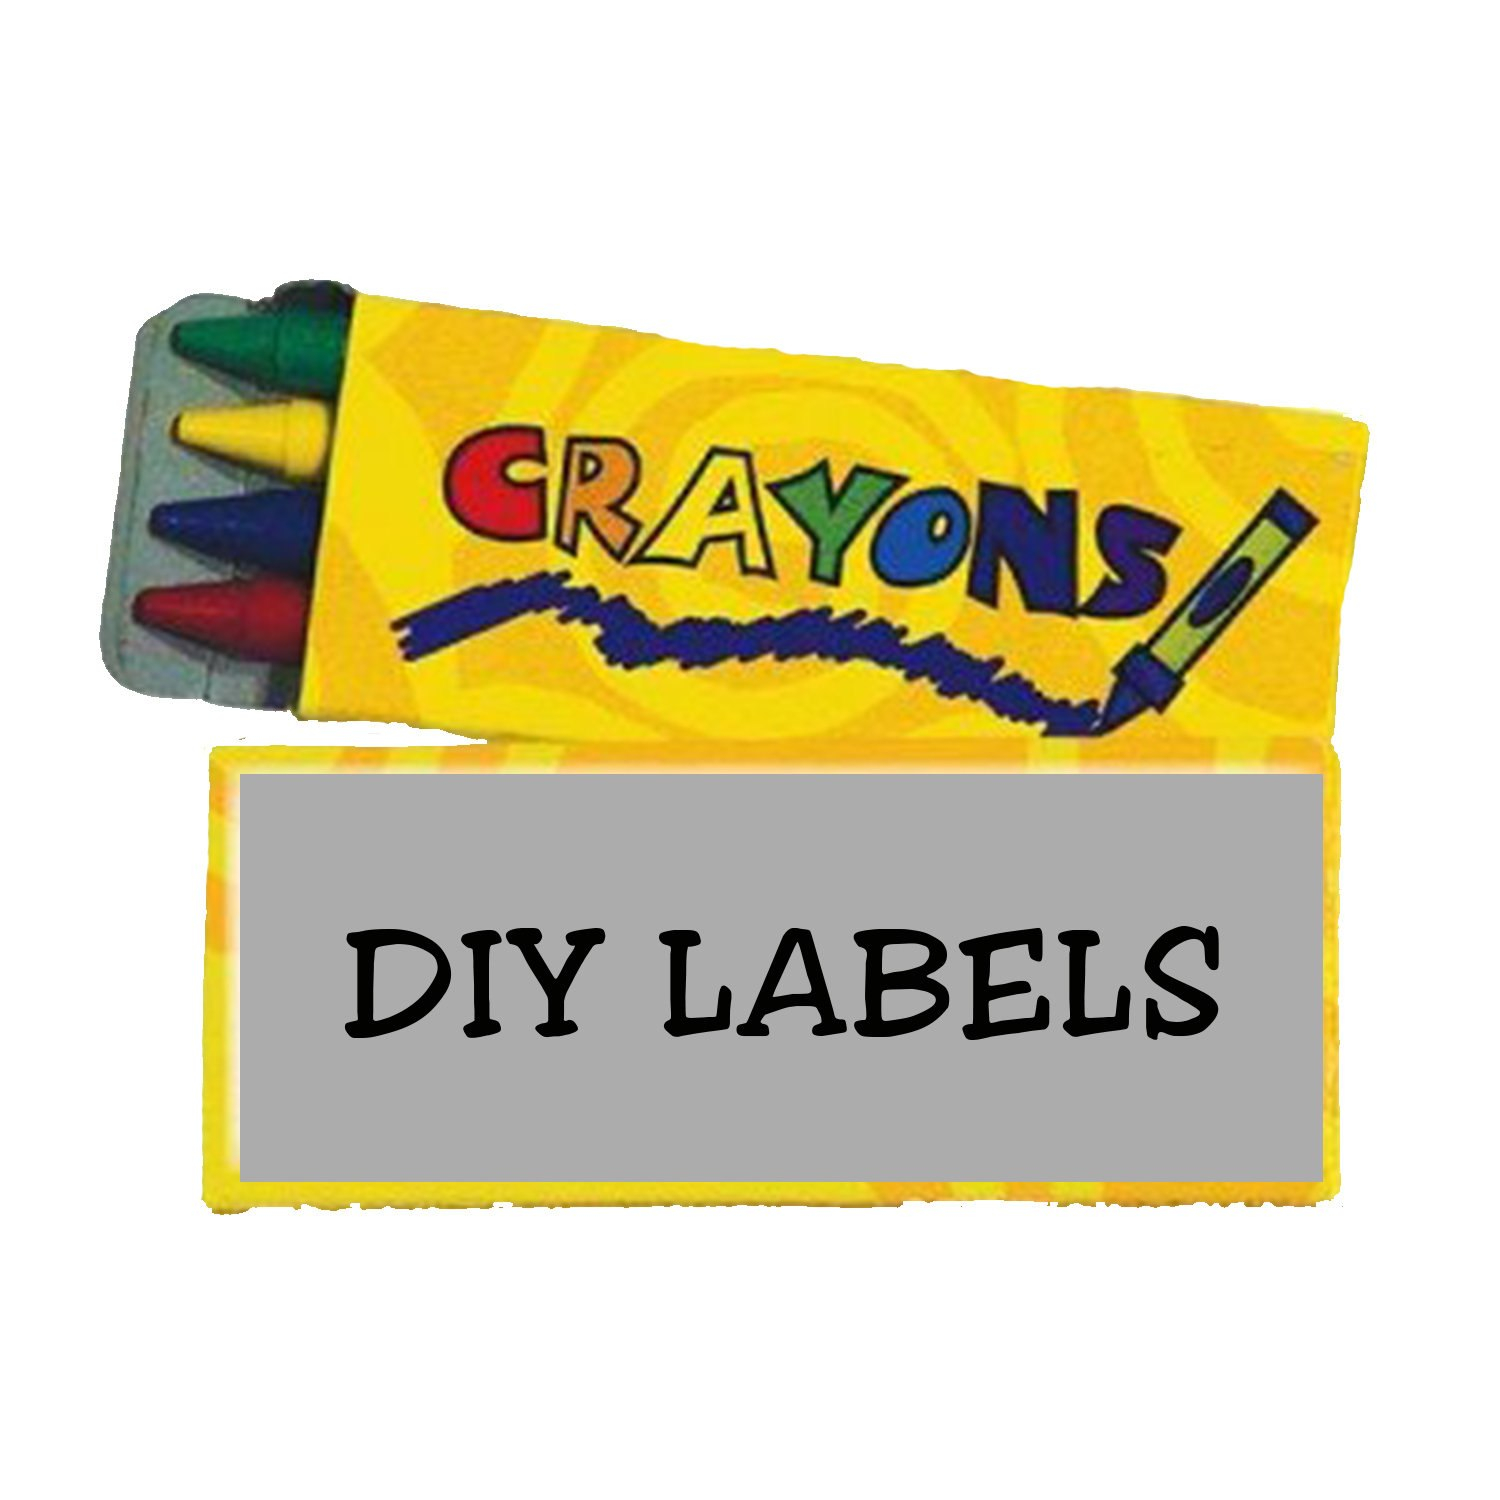 Diy  Pack Crayon Box Label Template  Etsy Within Crayon Labels Template